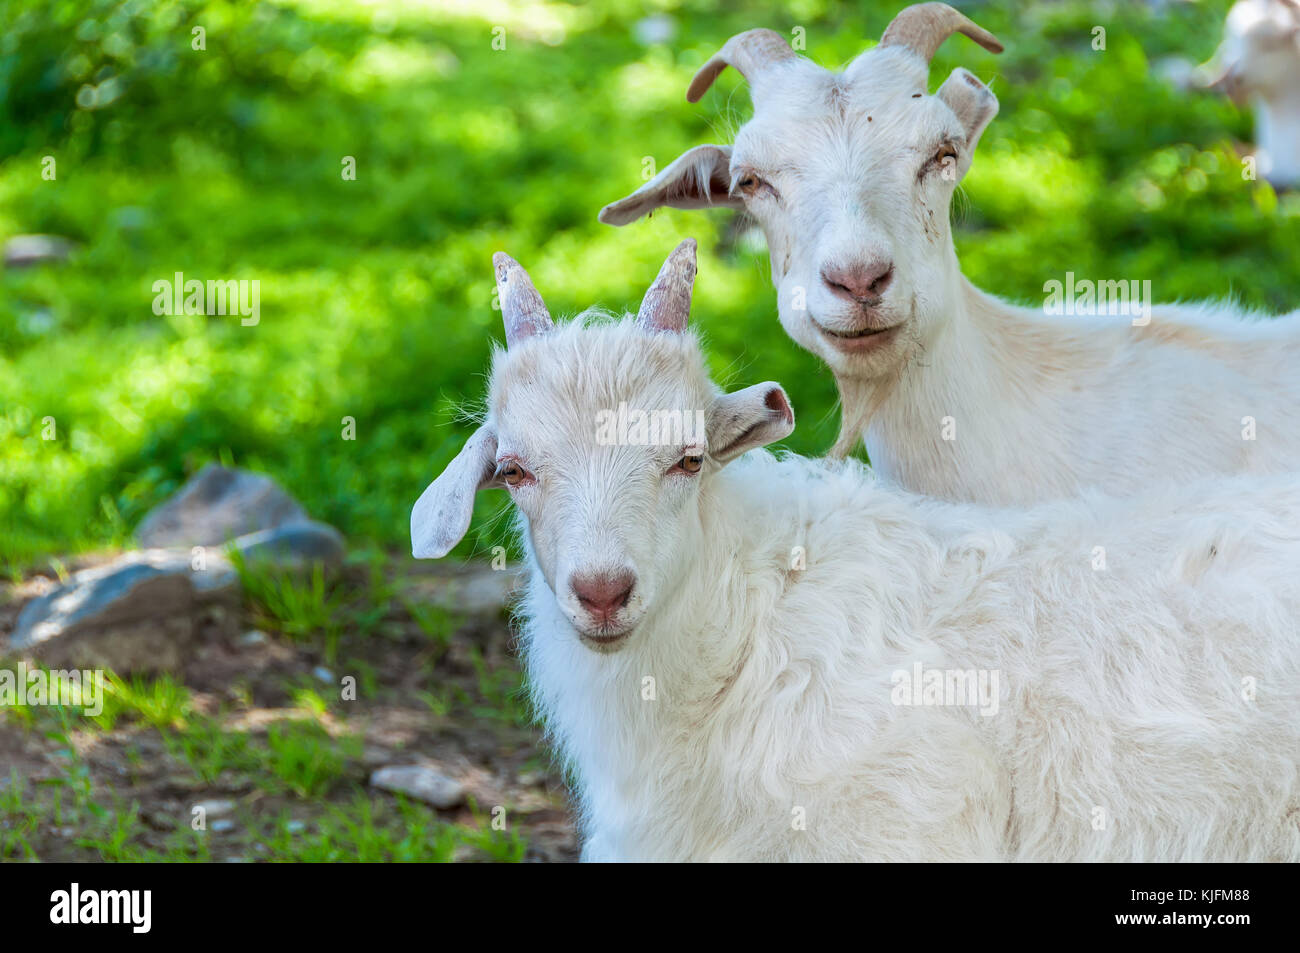 White goat and a little goat grazing on a meadow in the mountains - Stock Image